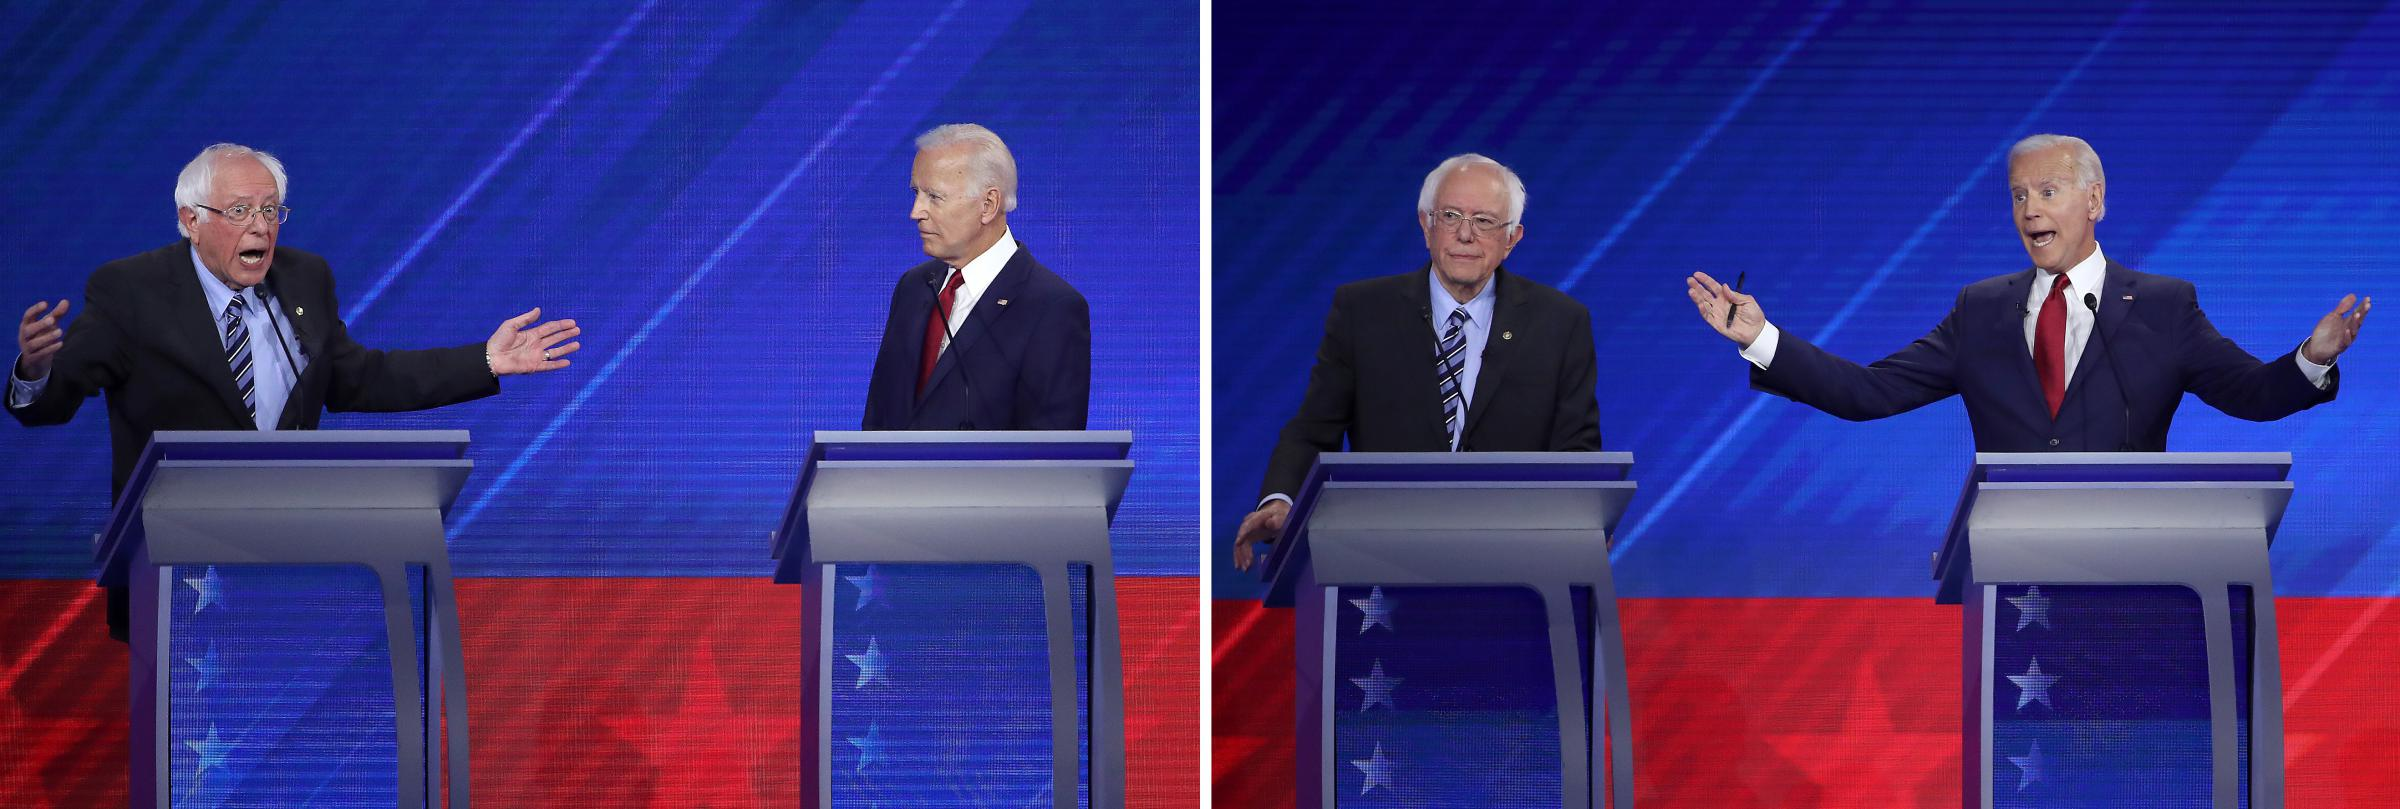 Democratic Debate Exposes Deep Divides Among Candidates Over